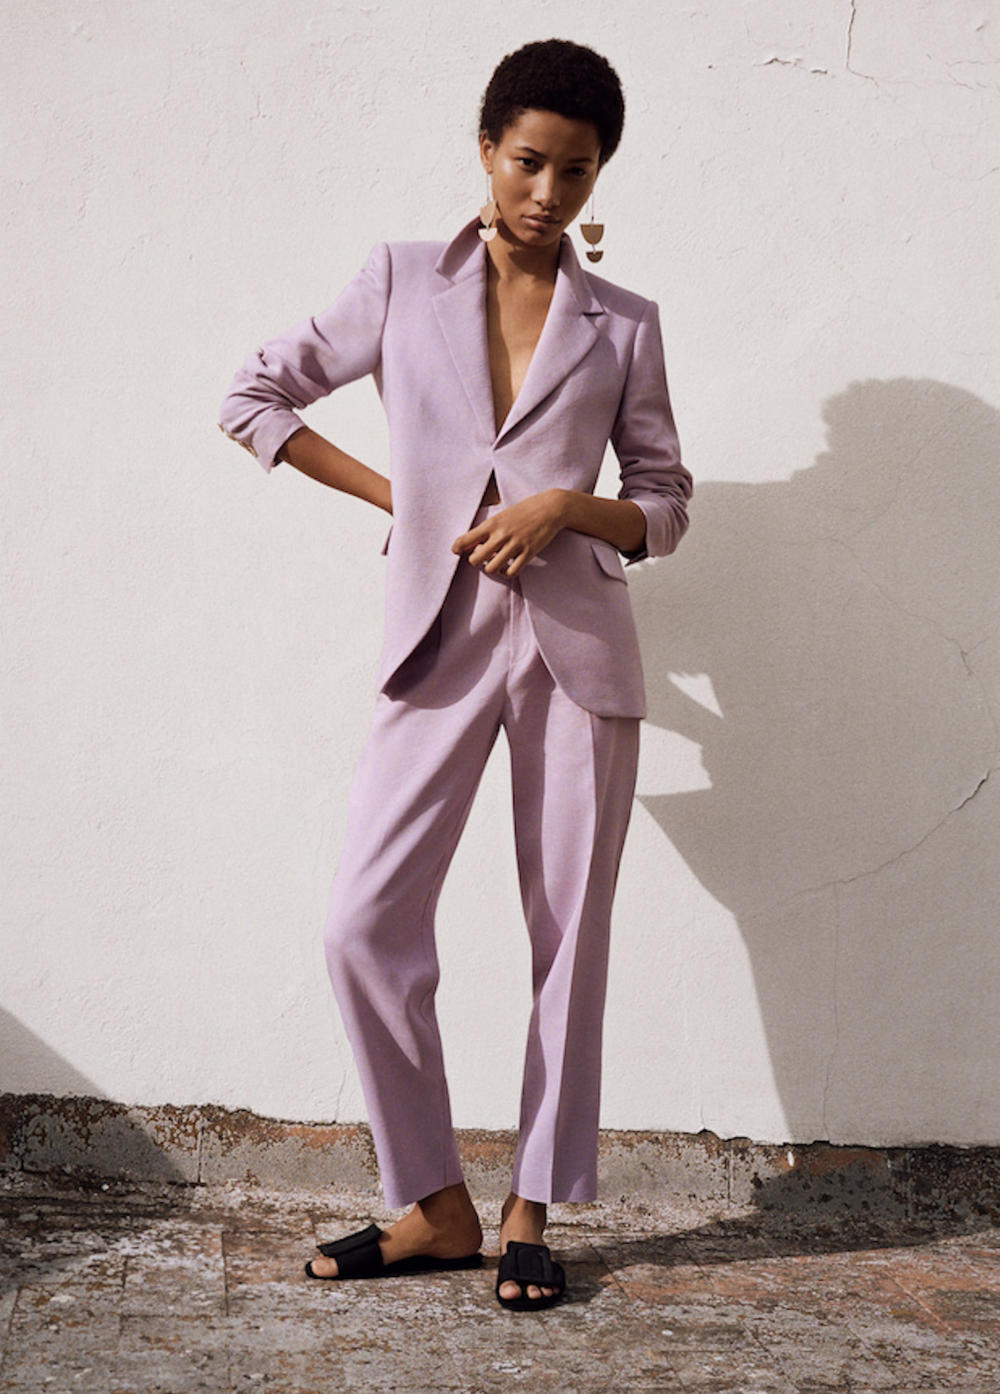 3. THE JACKET - MANGO: Structured Linen Jacket, £79.99Pair this lilac linen jacket with the matching trousers for a super cool formal look, or throw on over a baggy tee and skinny jeans for a dressy-yet-relaxed day look.